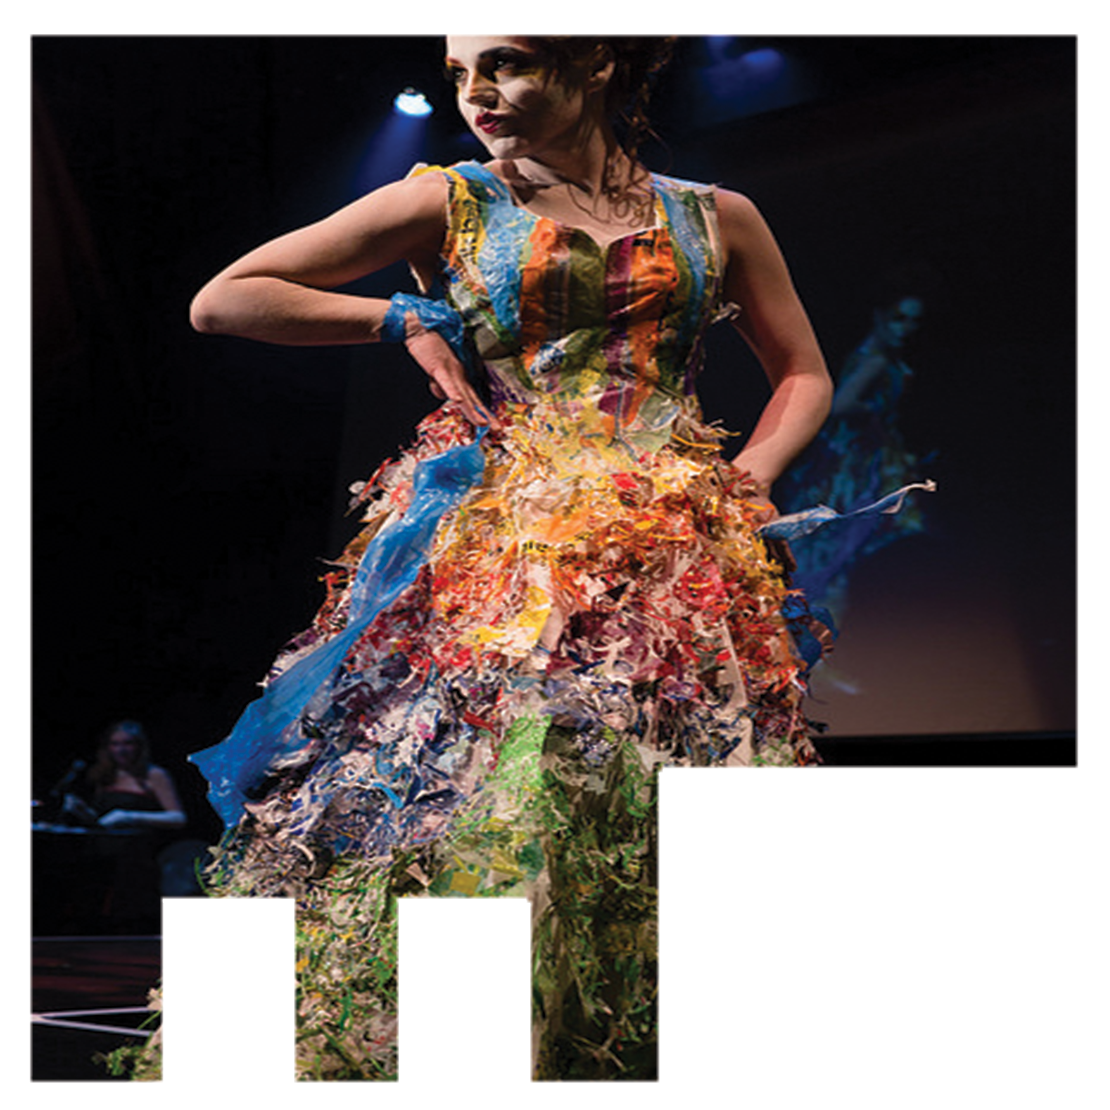 The 2016 Wearable Art Show Featuring the Runway Challenge  in the photo.